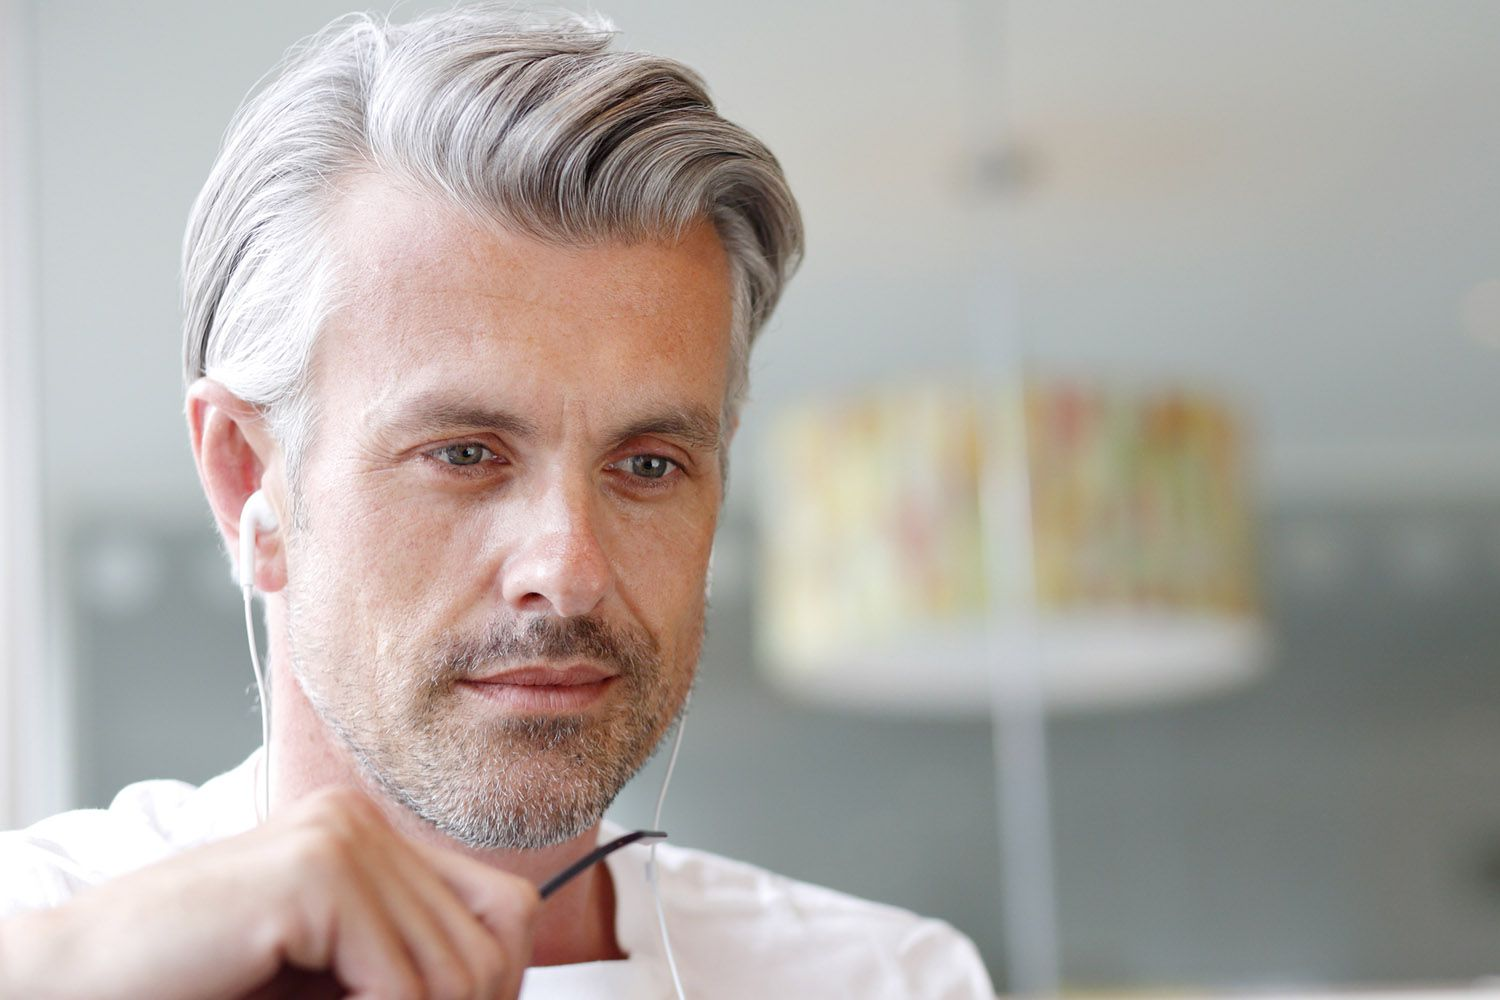 Great Haircuts For Men In Their 40s